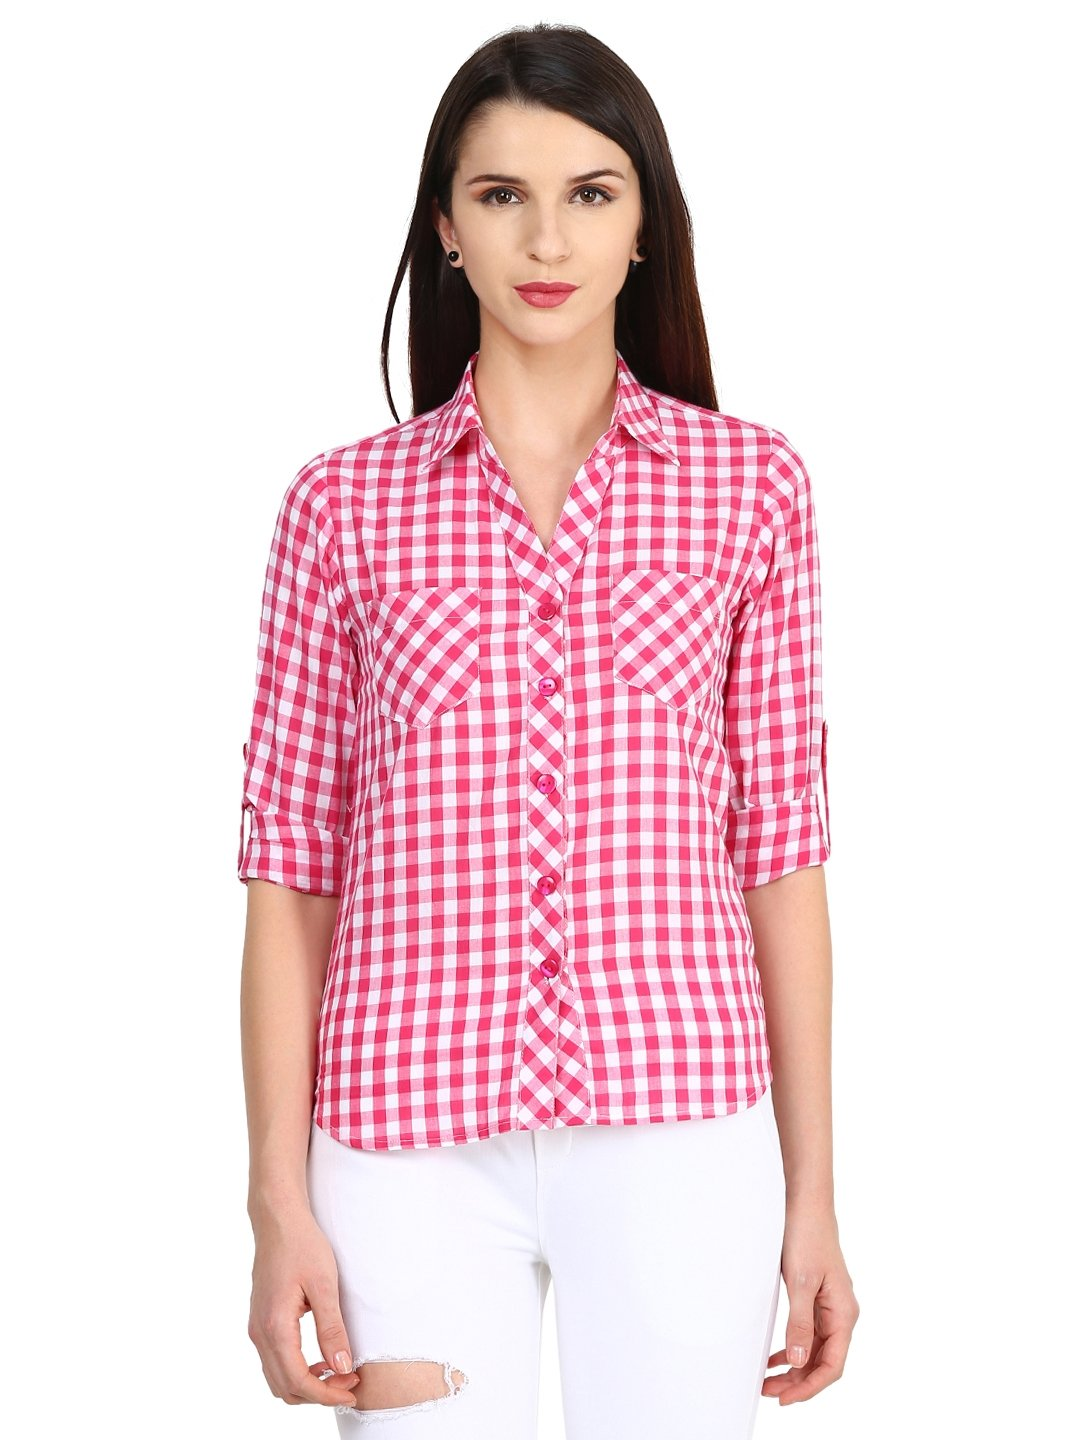 Castle White & Pink Checked Shirt